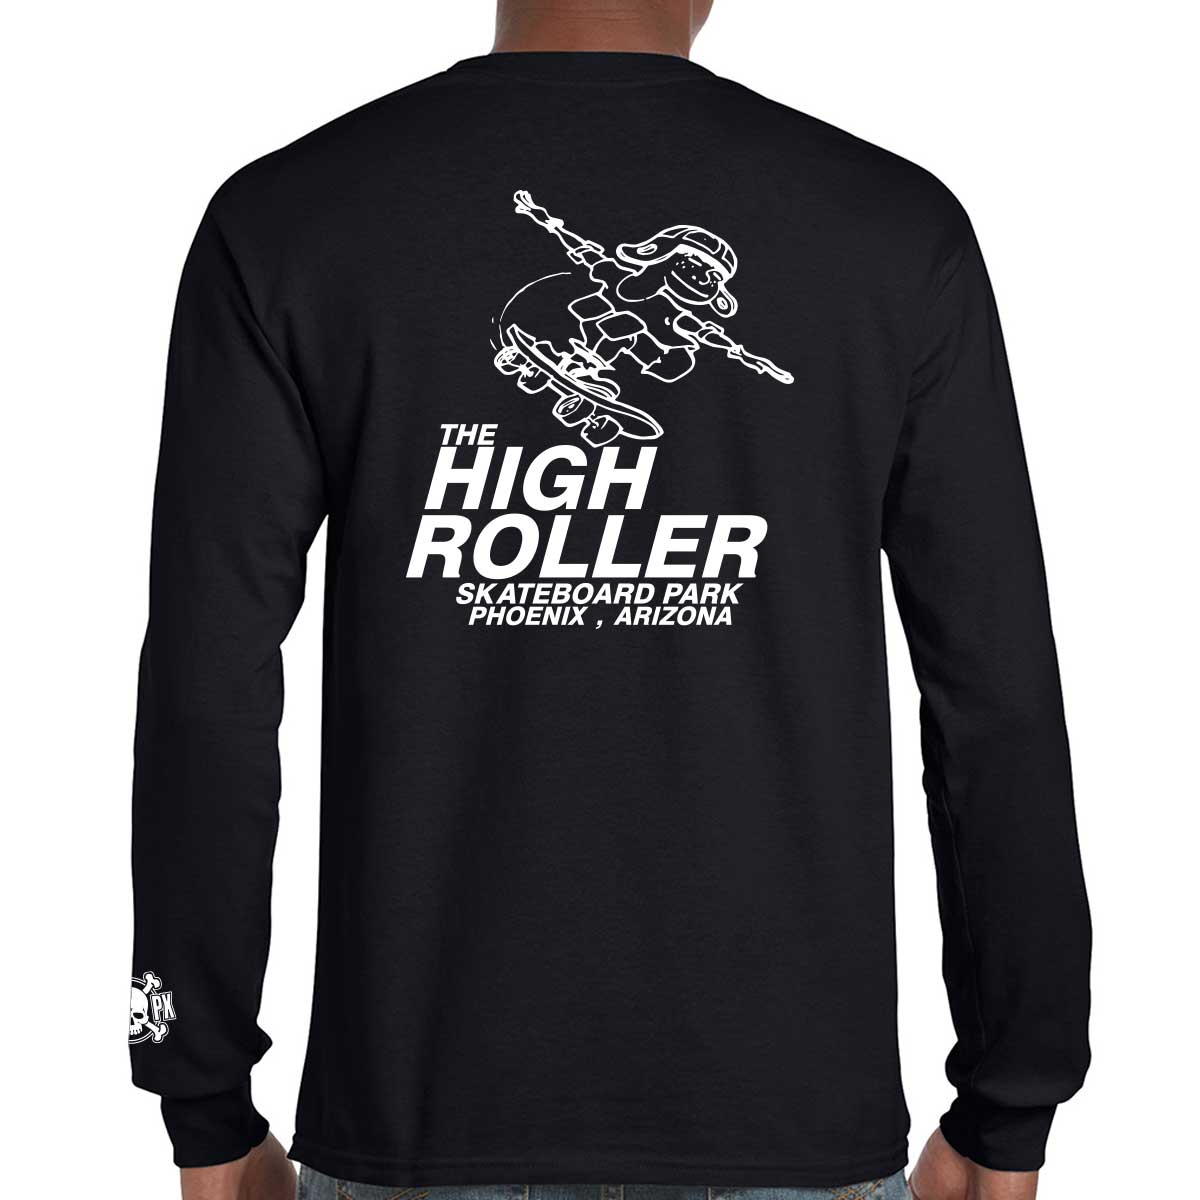 The High Roller Skateboard Park Black Long Sleeve T-shirt